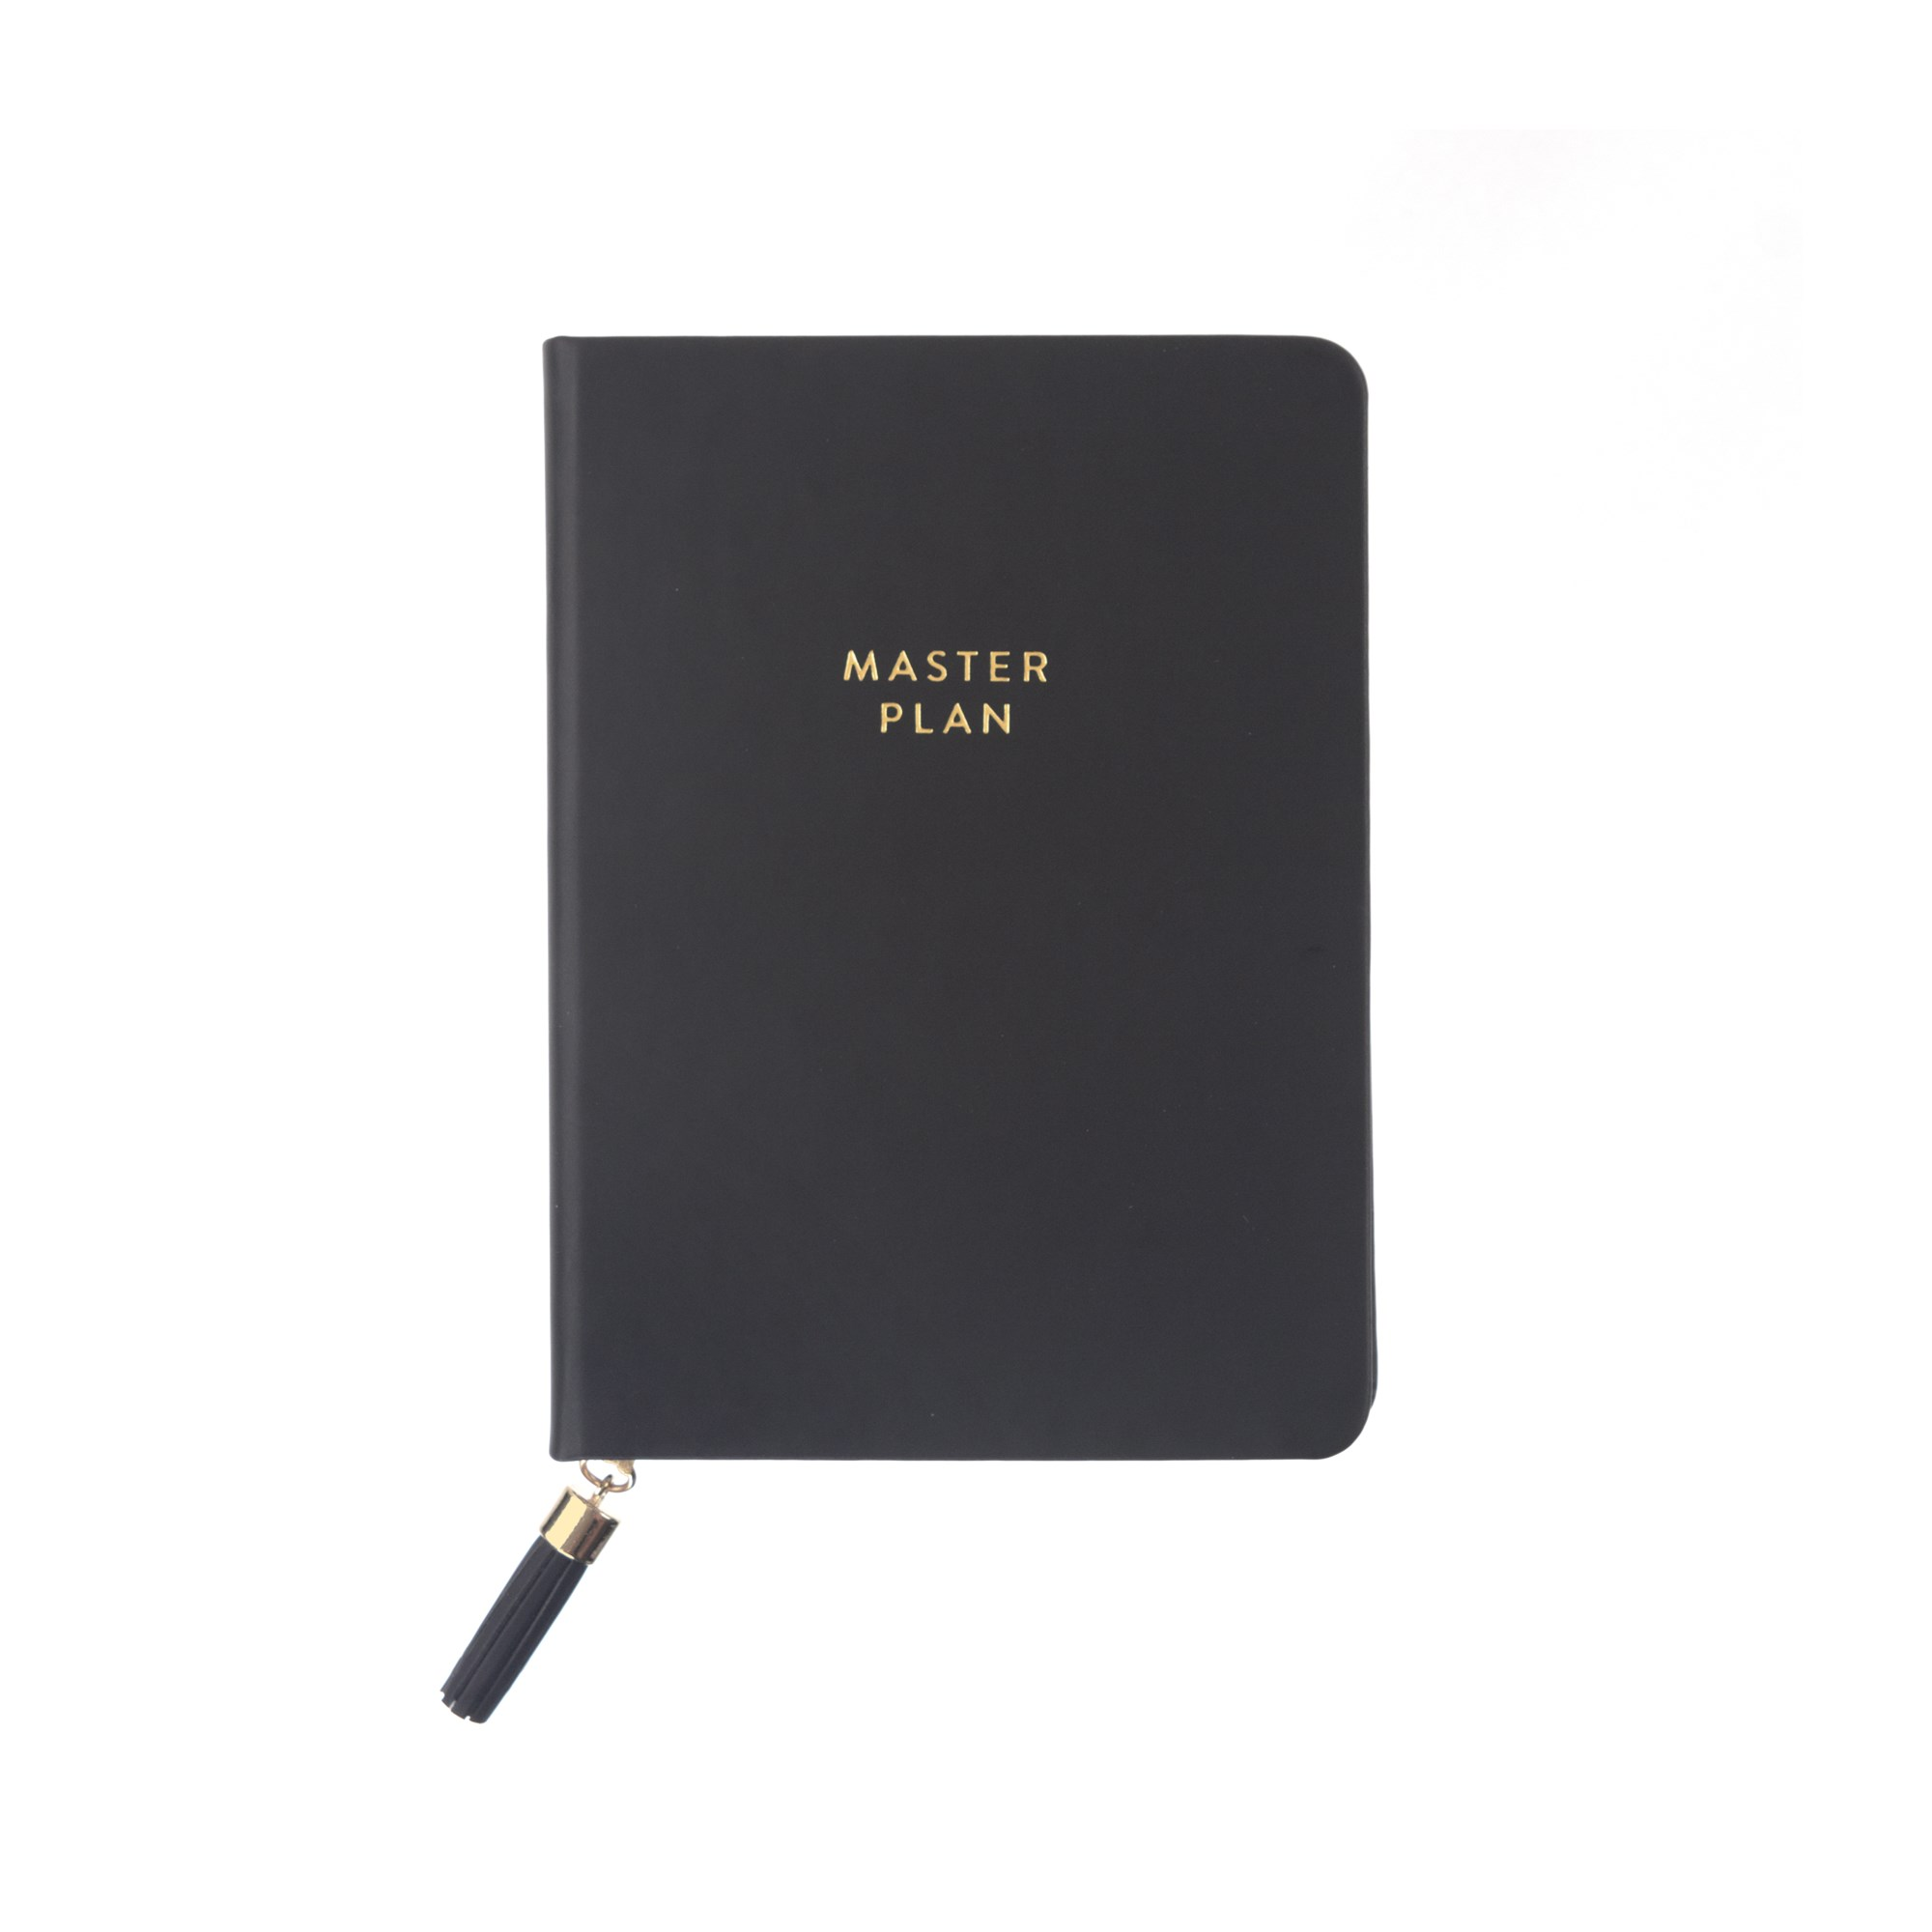 Tassel Journal: Black Master Plan (D320a)